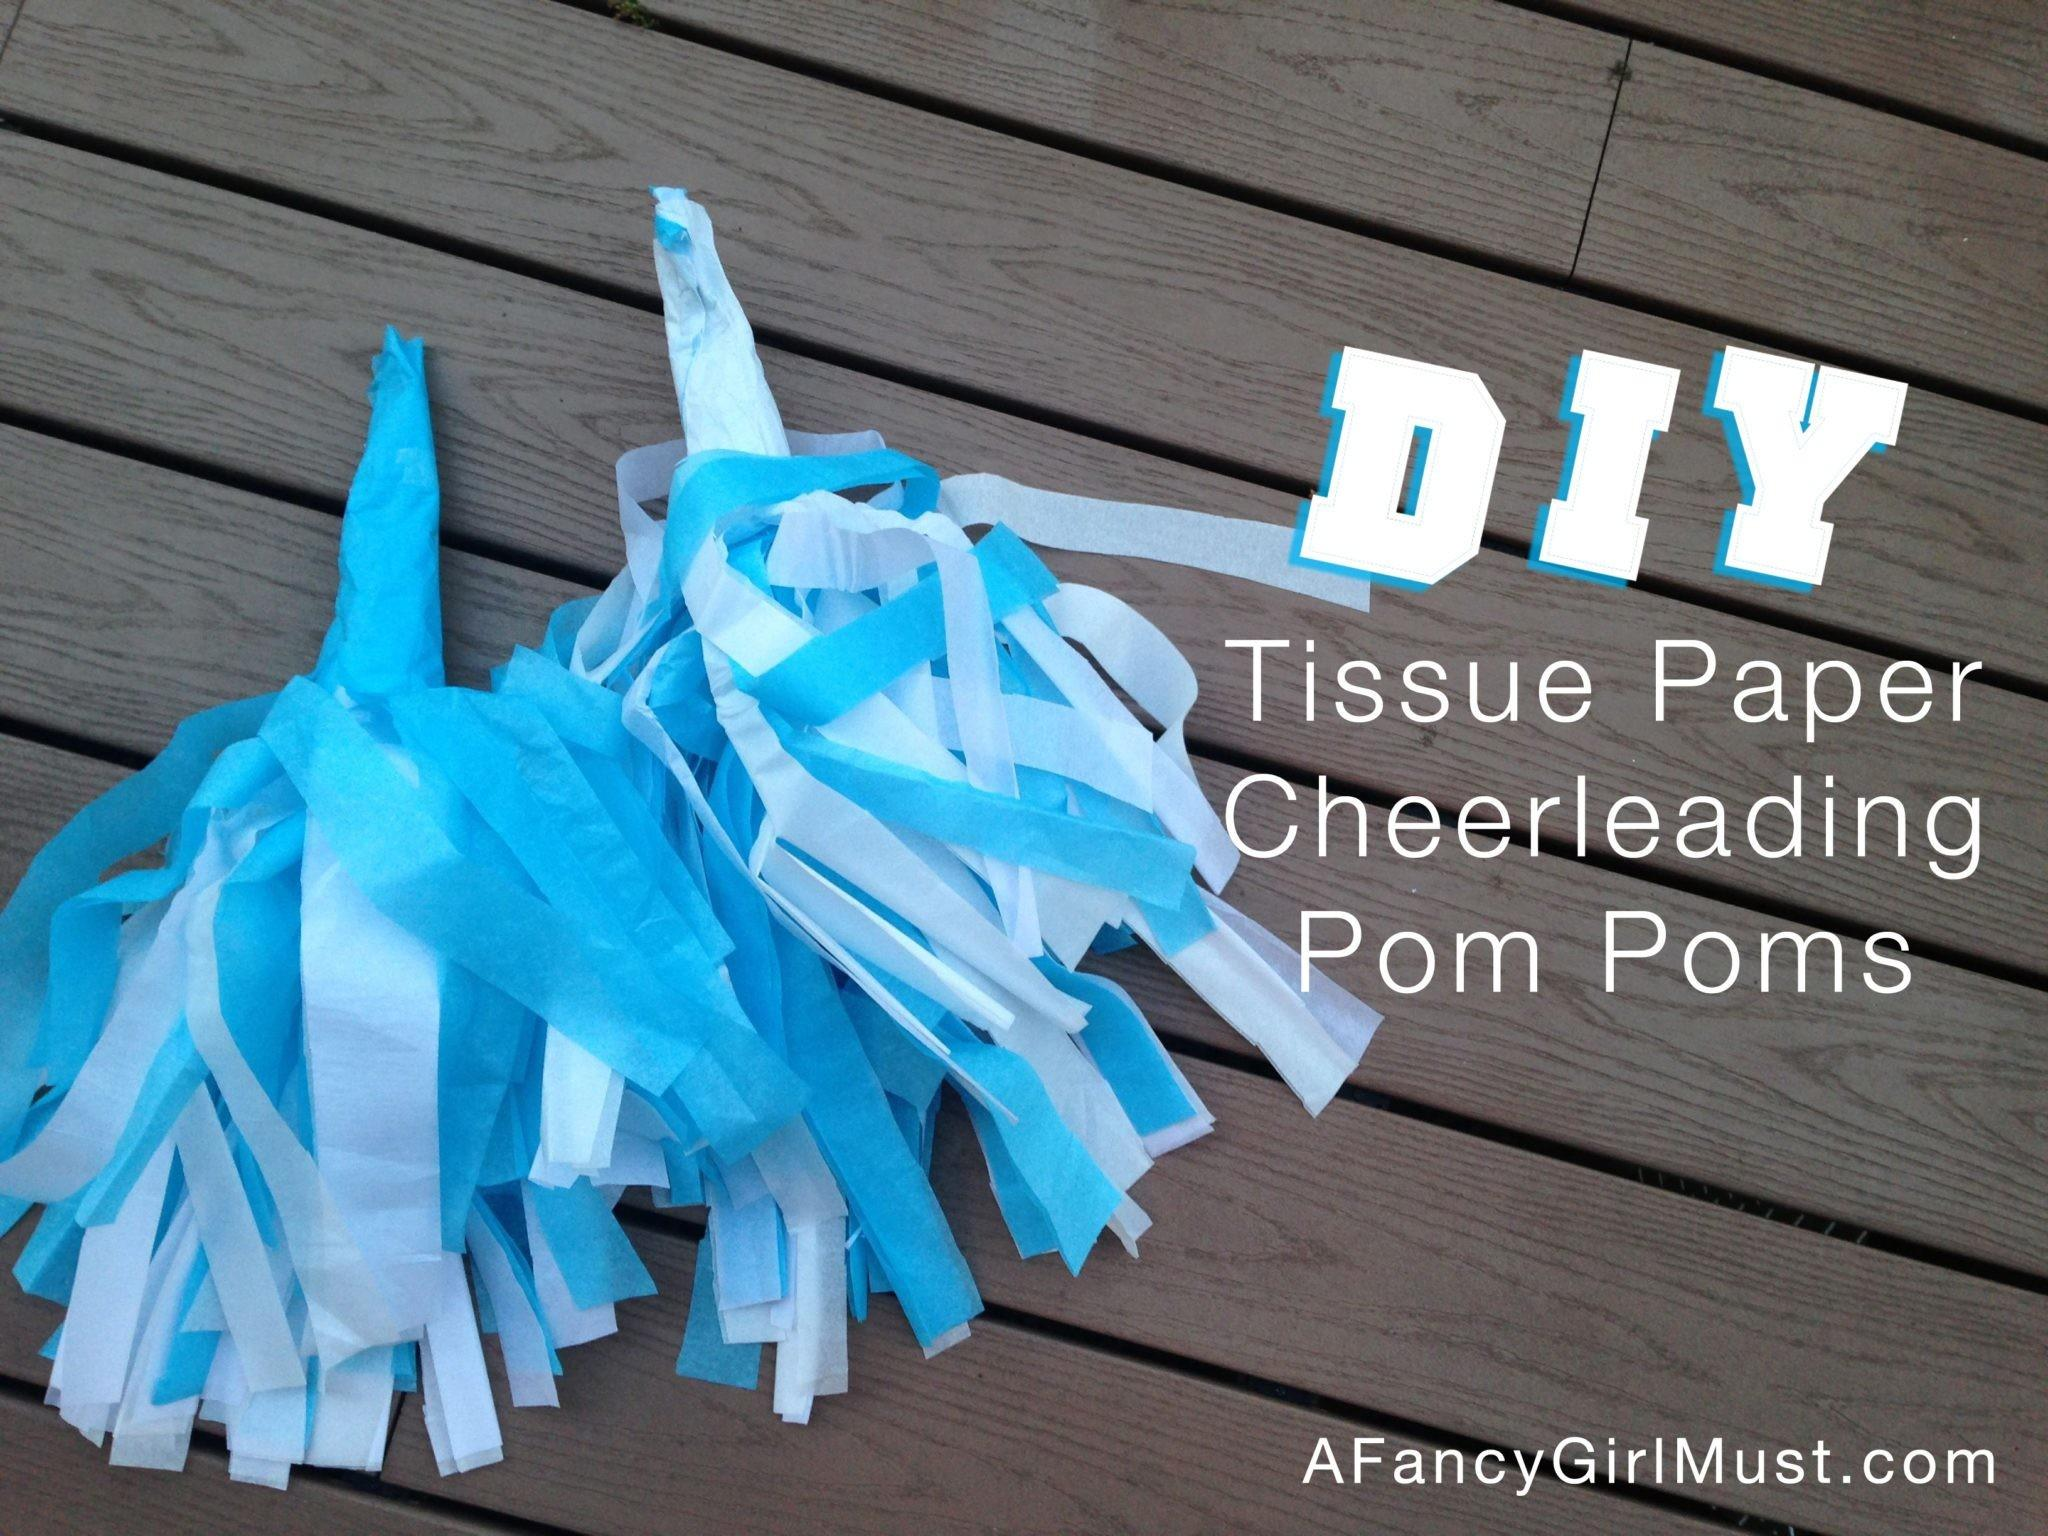 Diy Tissue Paper Cheerleading Pom Poms Fancy Girl Must